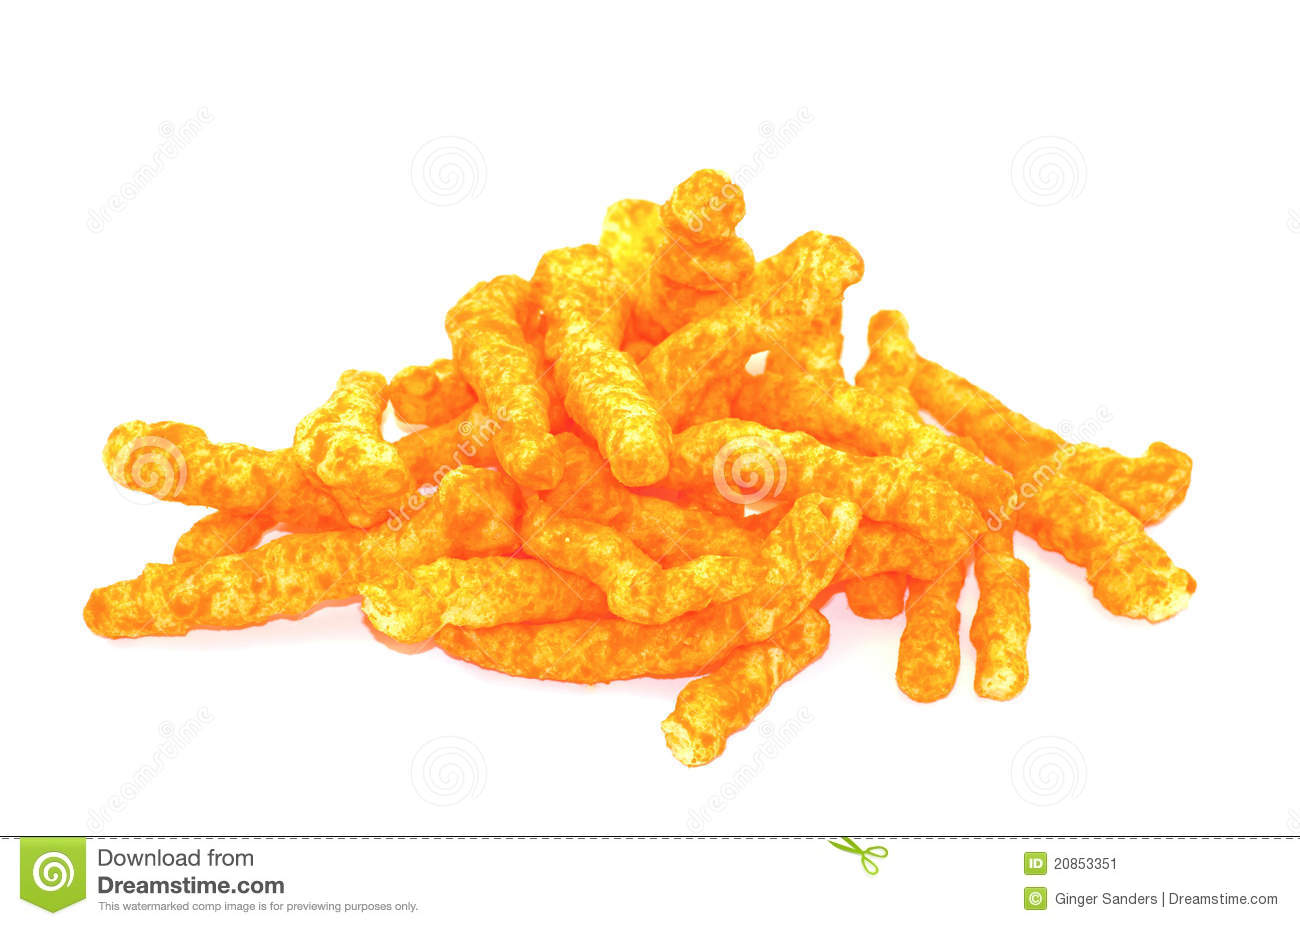 Cheetos Stock Photos, Images, & Pictures.